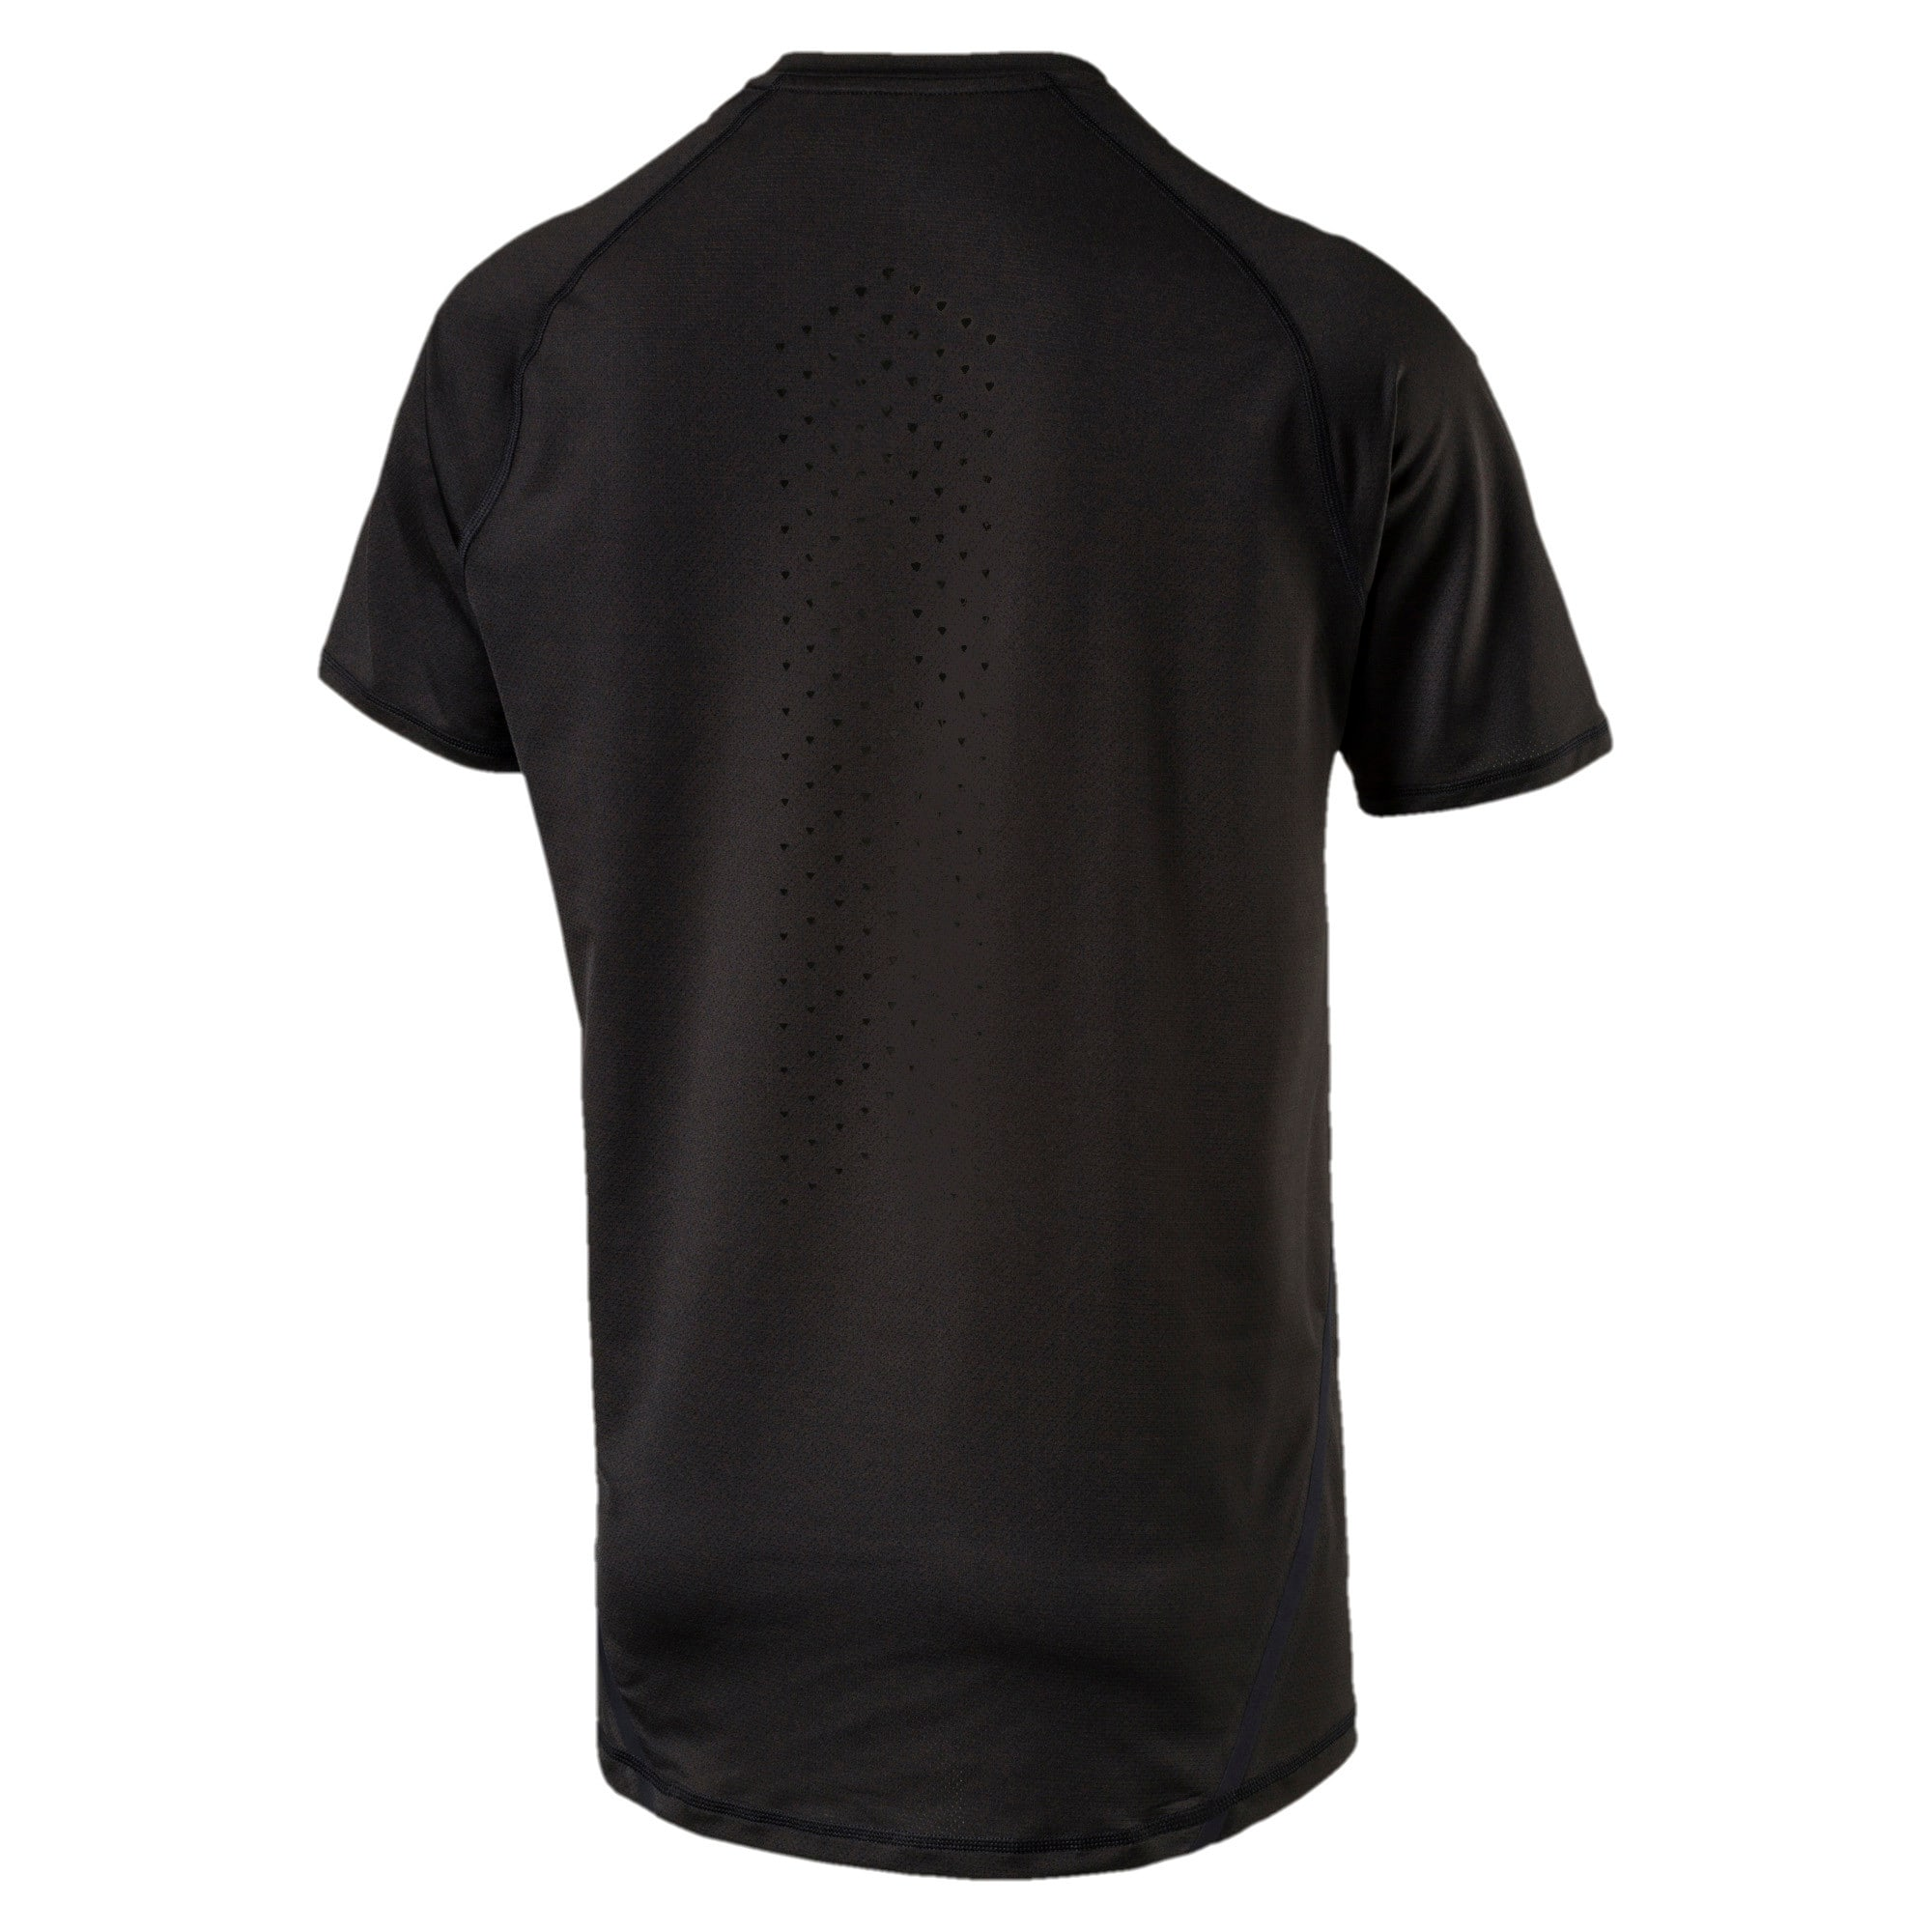 Thumbnail 4 of Active Training Men's Power T-Shirt, Puma Black, medium-IND